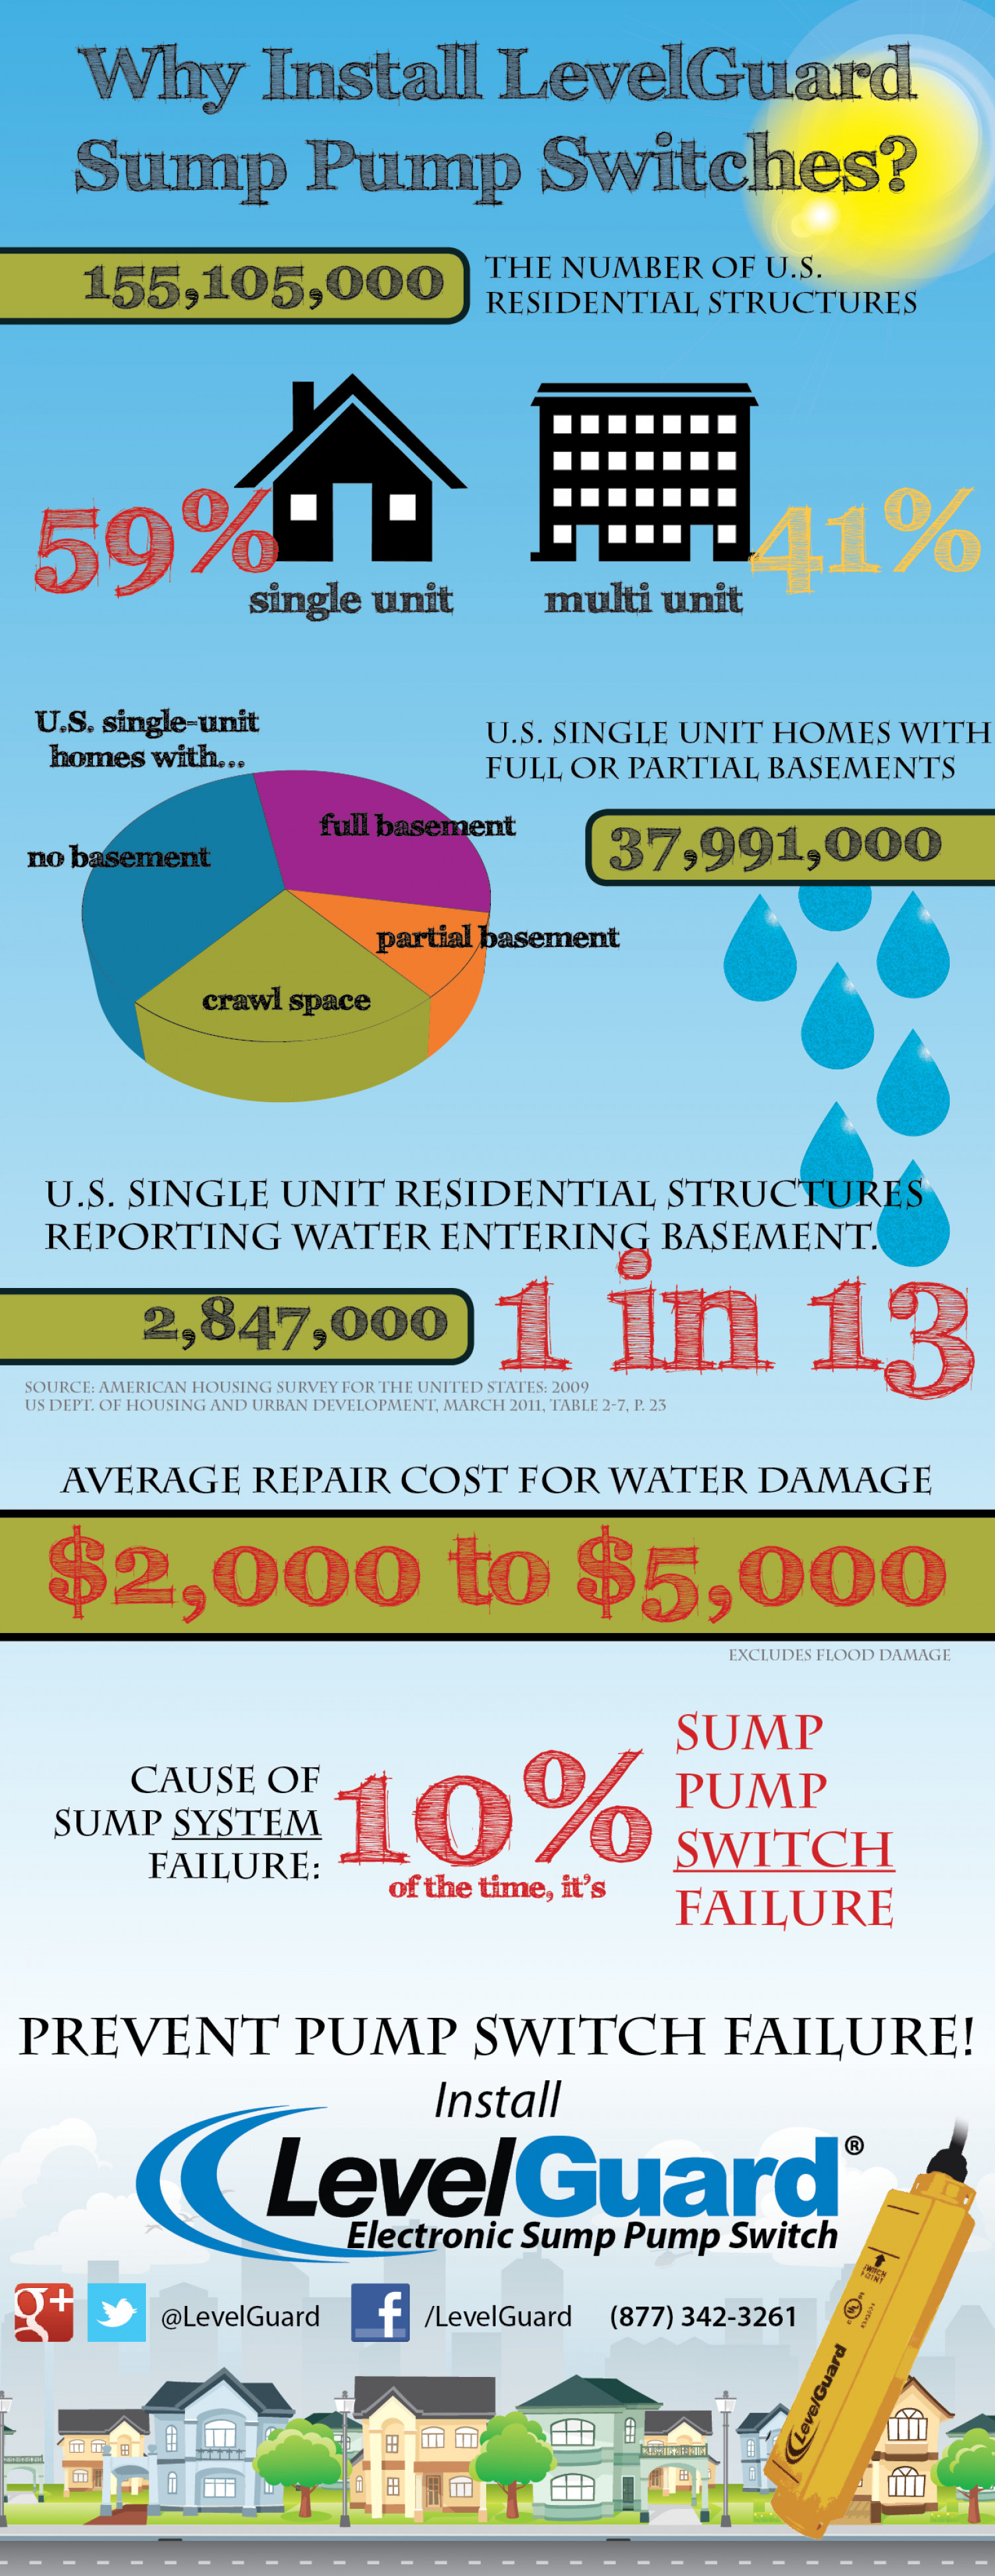 The importance of reliable sump pump switches Infographic